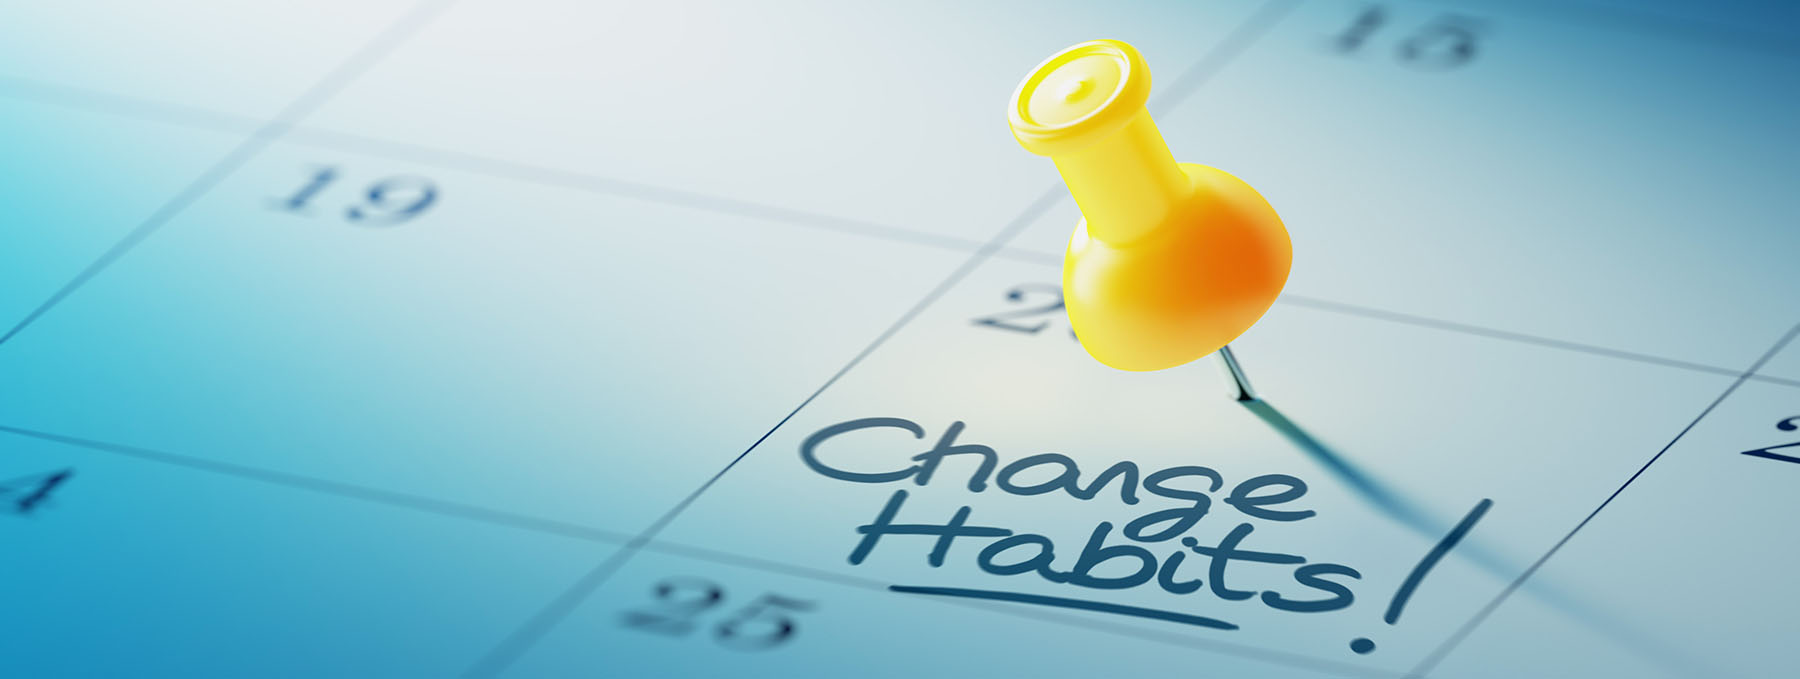 Concept image of a Calendar with a yellow push pin. Closeup shot of a thumbtack attached. The words Change Habits written on a white notebook to remind you an important appointment.